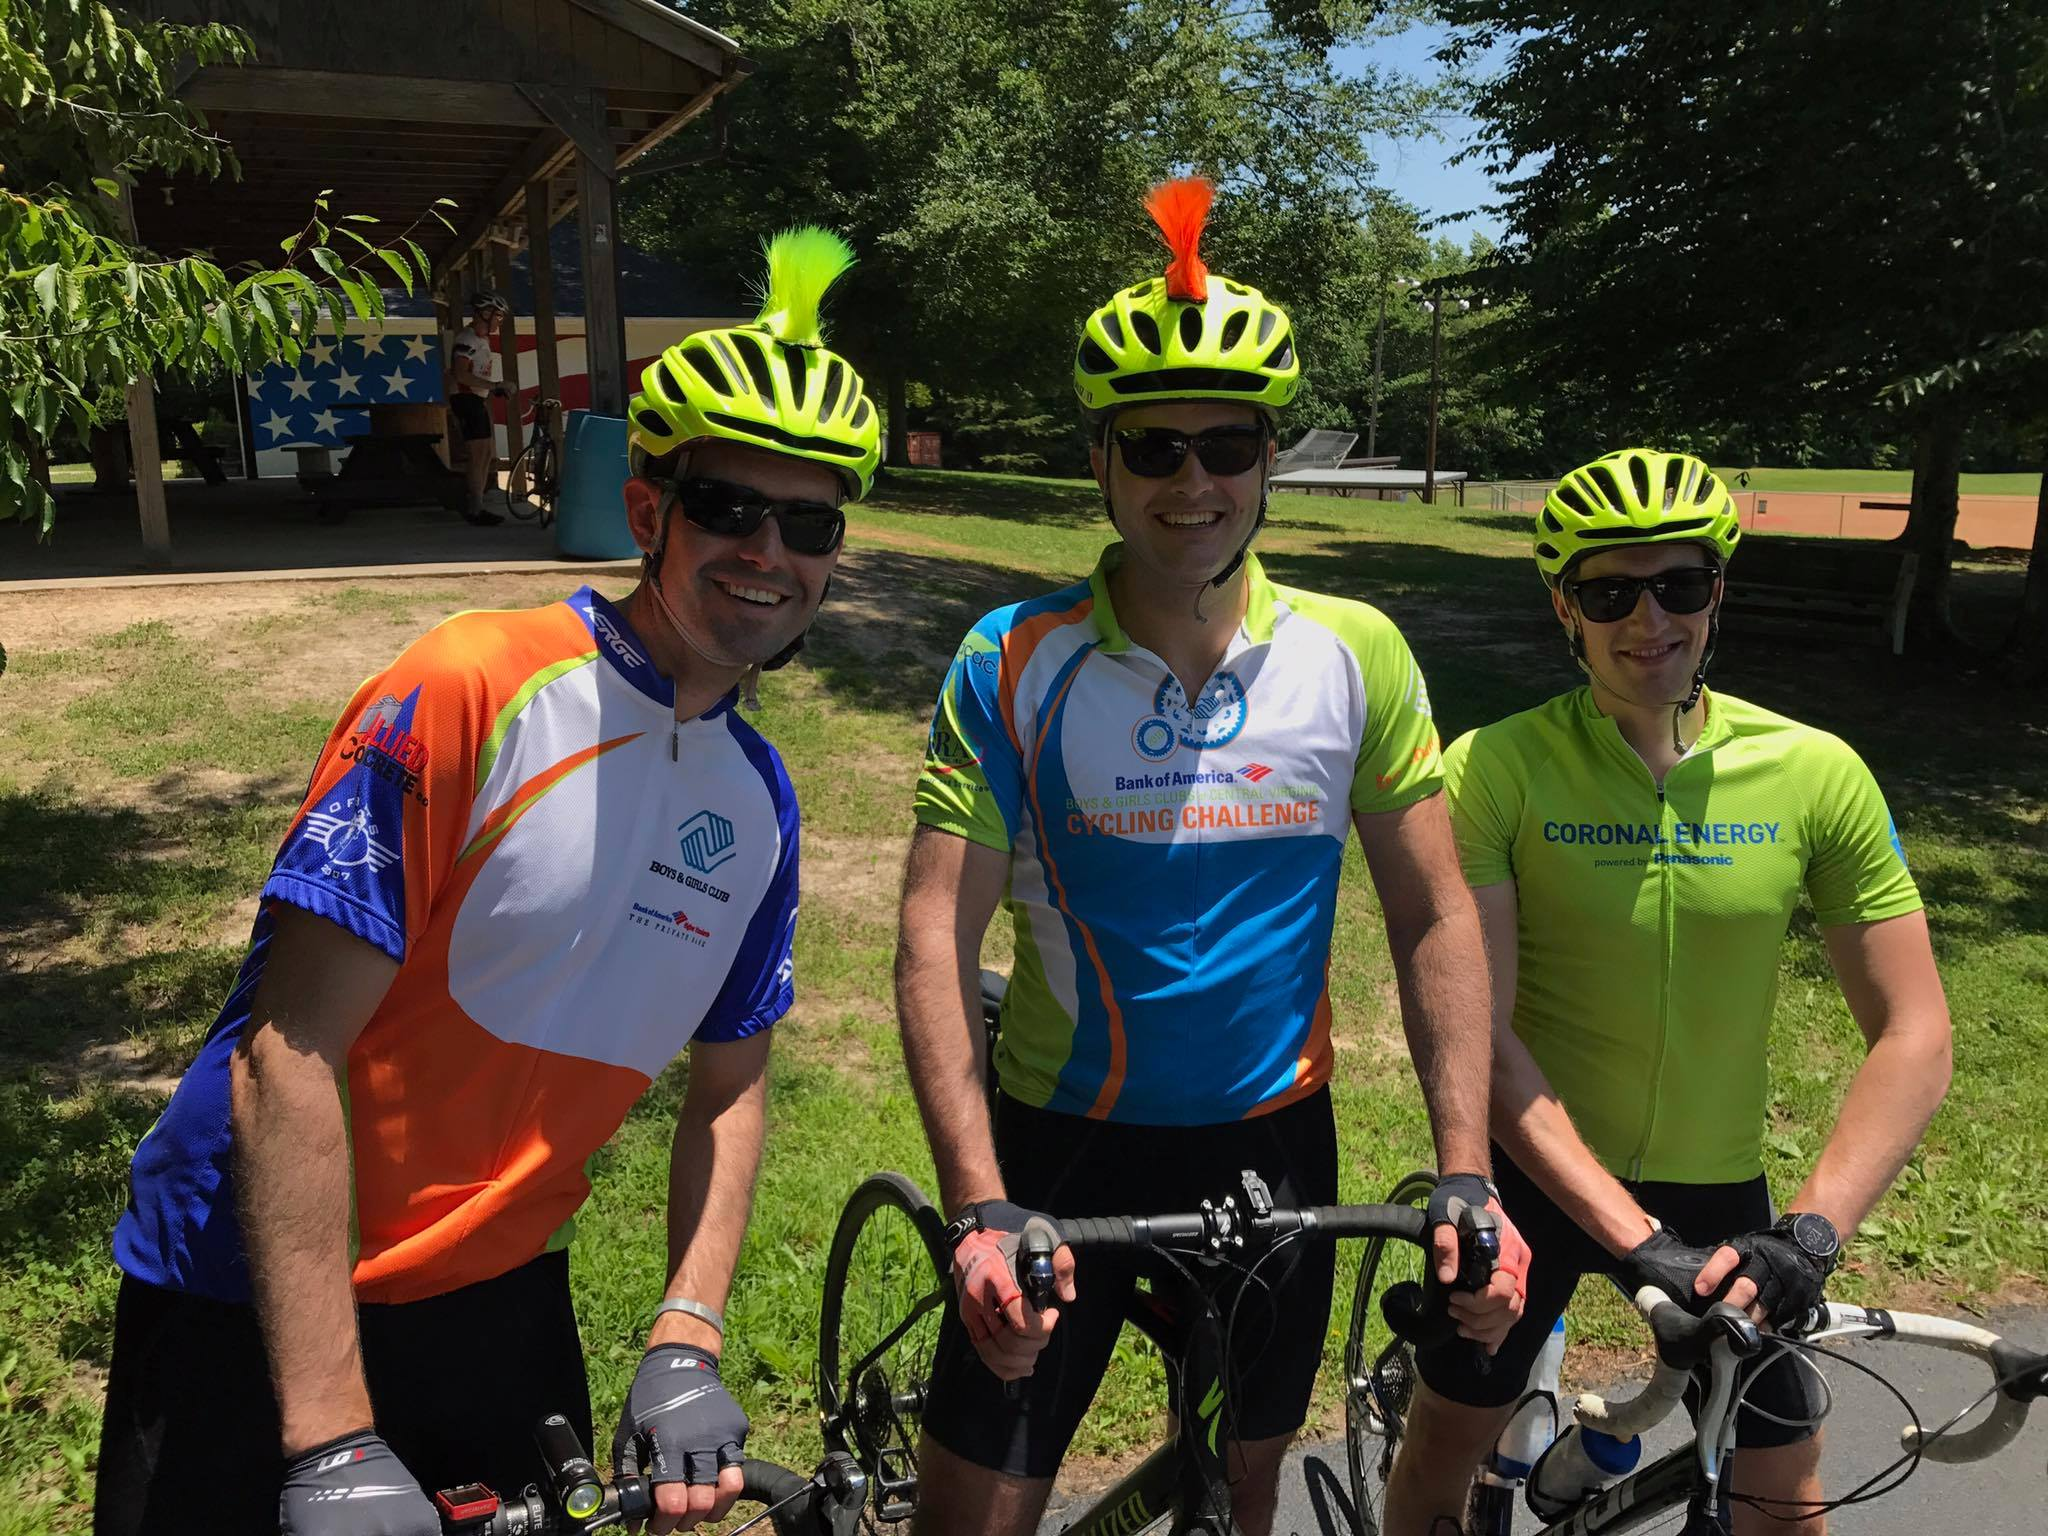 2017: Glorious weather and mohawk bike helmets were hallmarks of our third JoA.